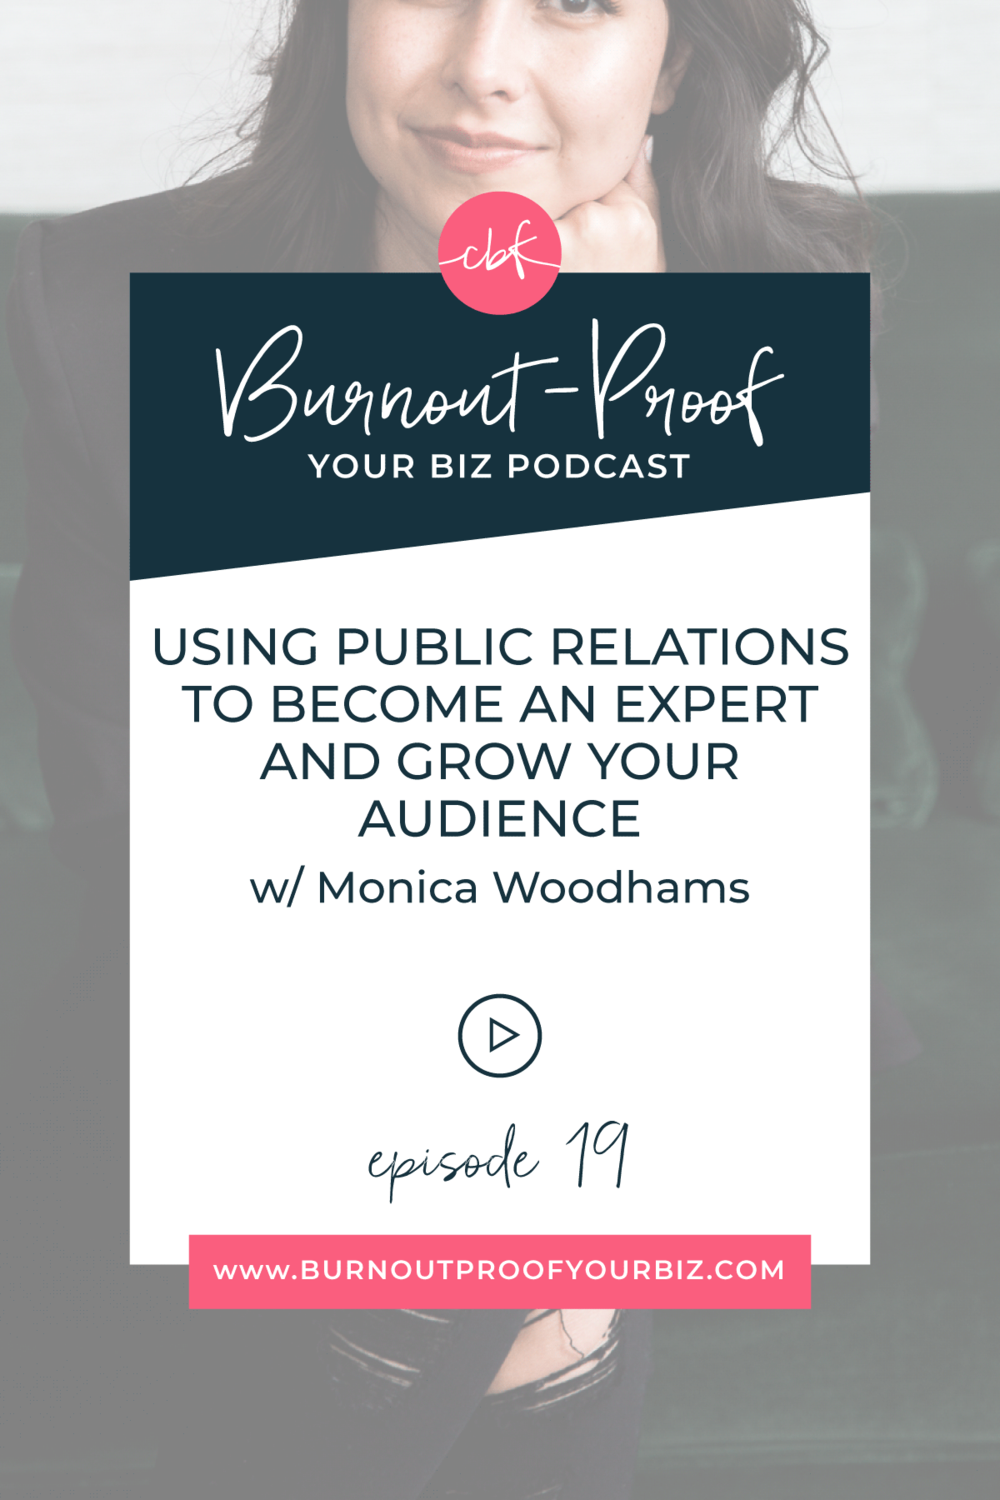 Burnout-Proof Your Biz Podcast with Chelsea B Foster | Episode 019 - Using PR to Become an Expert and Grow Your Audience with Monica Woodhams | Learn how to run your biz and live your dream life on your own terms without the fear of burnout.